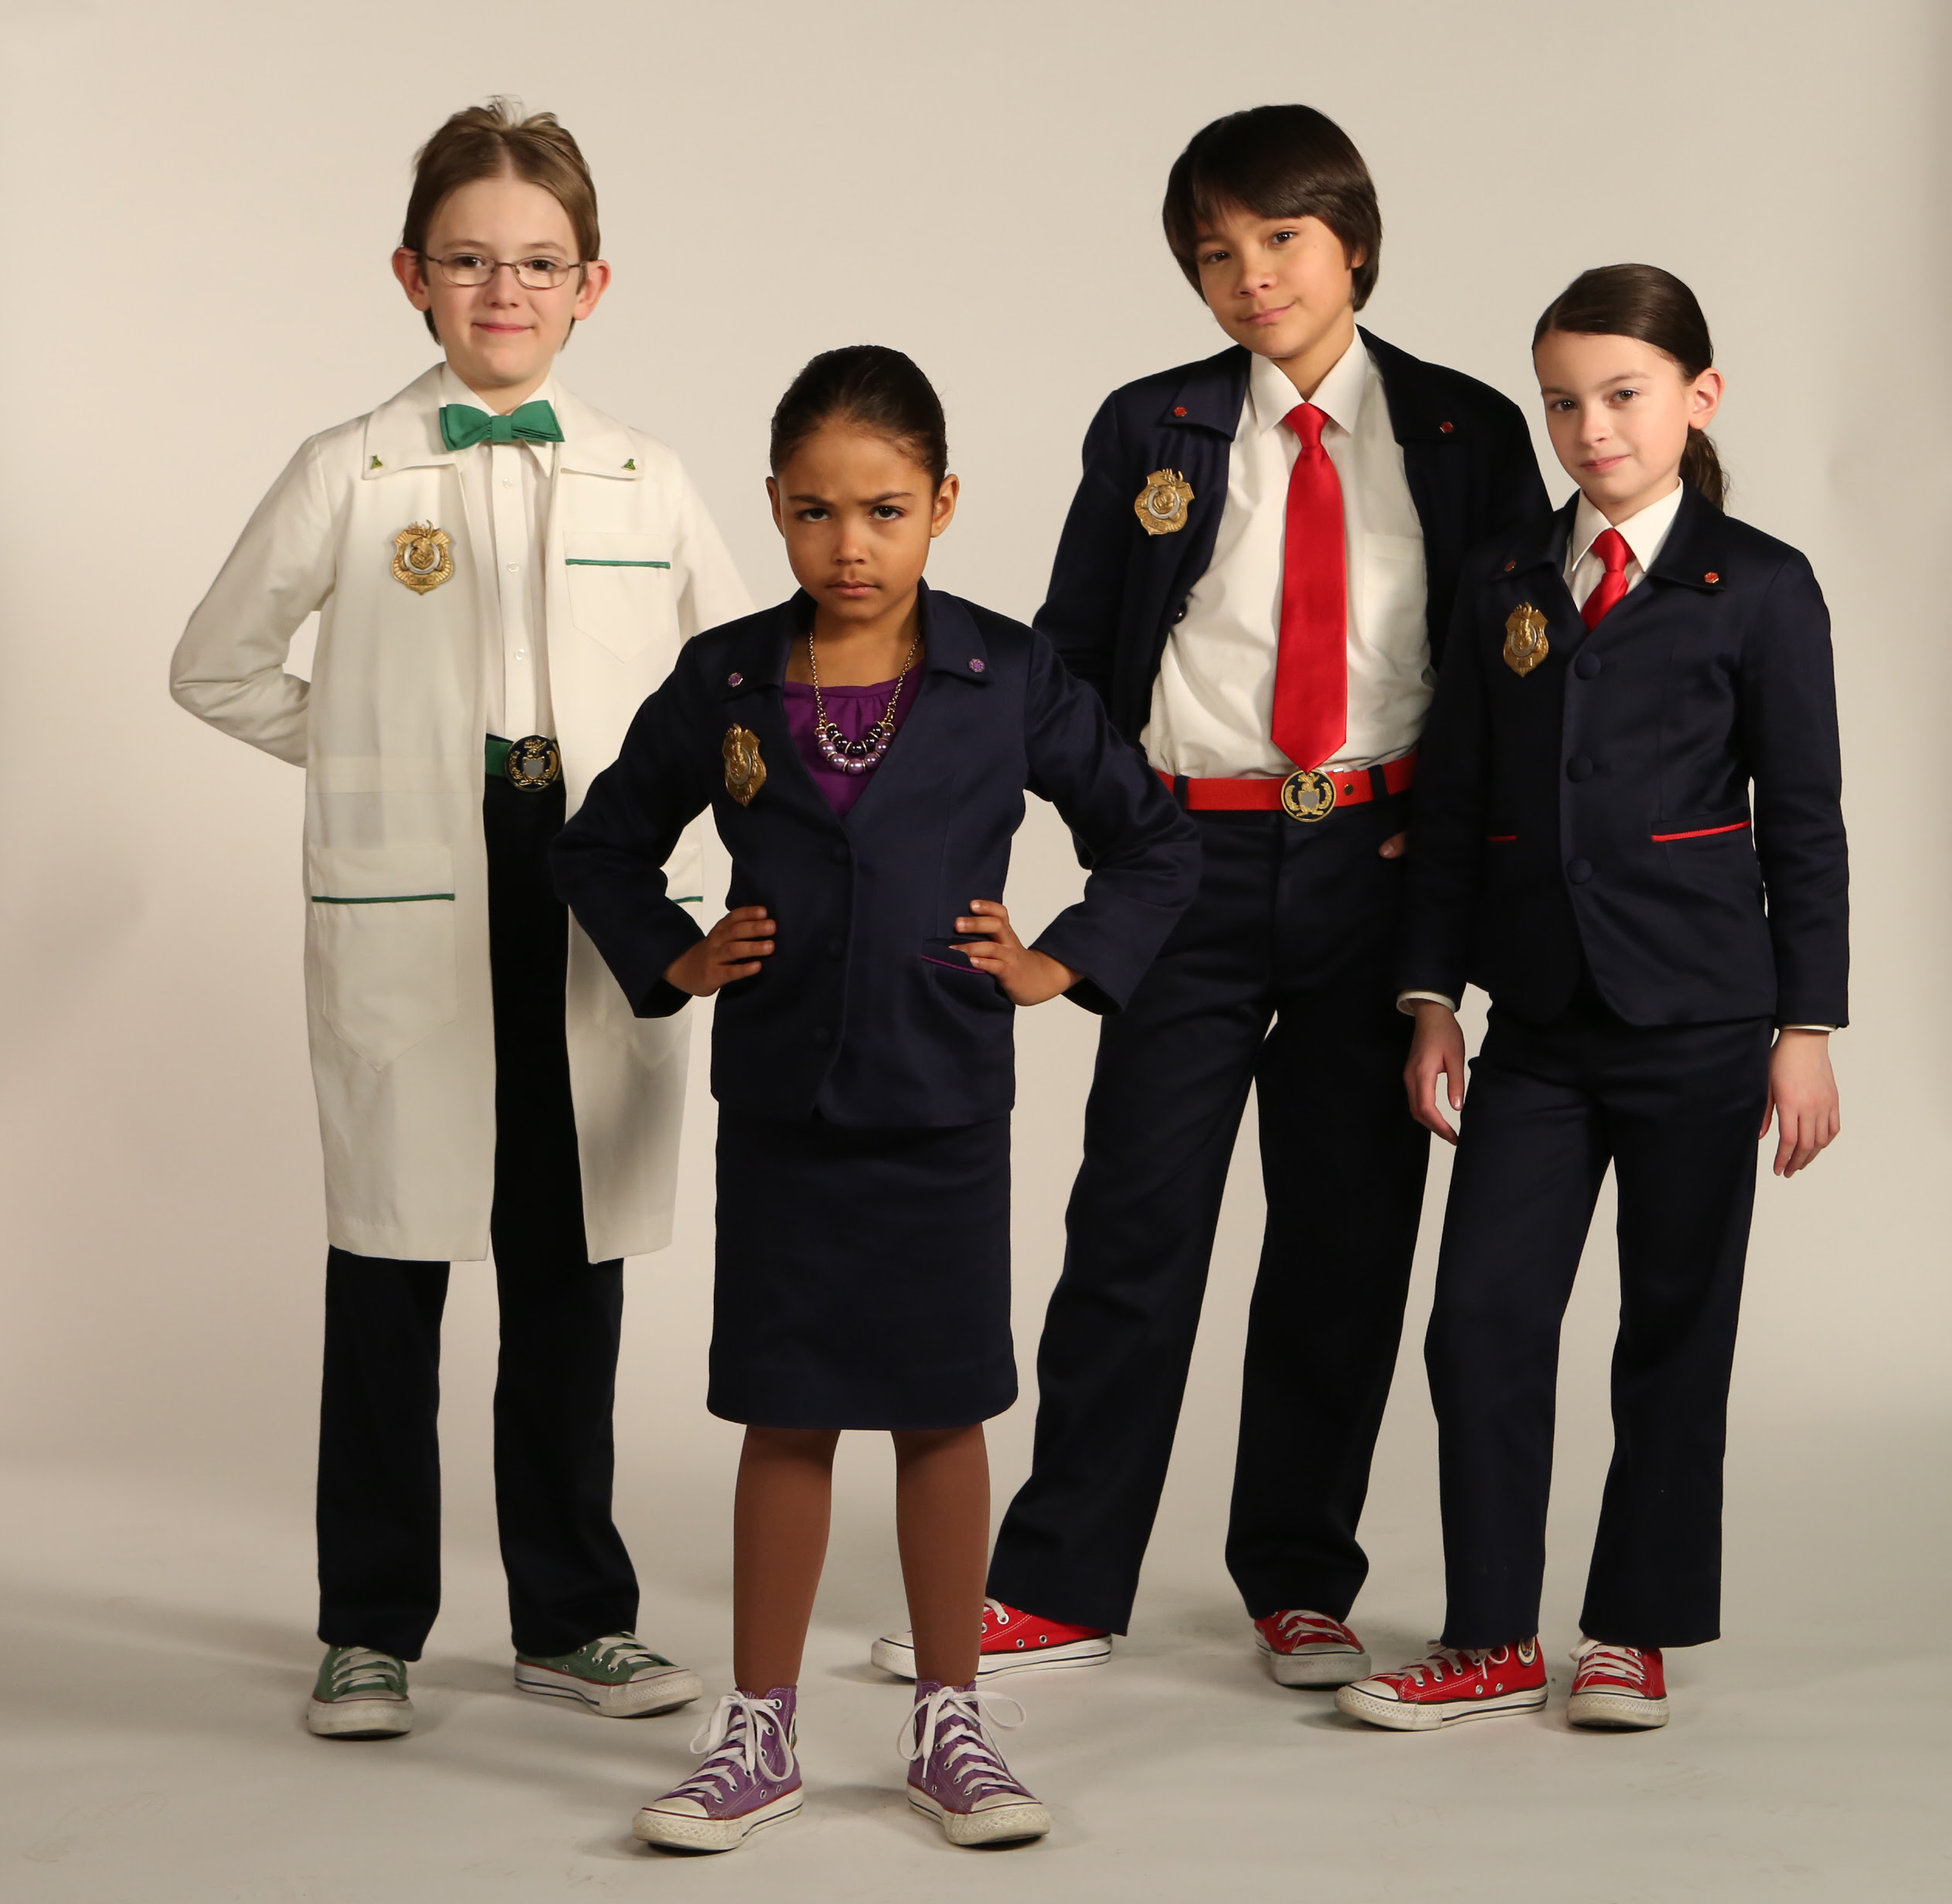 Odd Squad Will Bring Live Action Math Adventure To Pbs Kids In The Fall Of 2014 on oscar party ideas and recipes